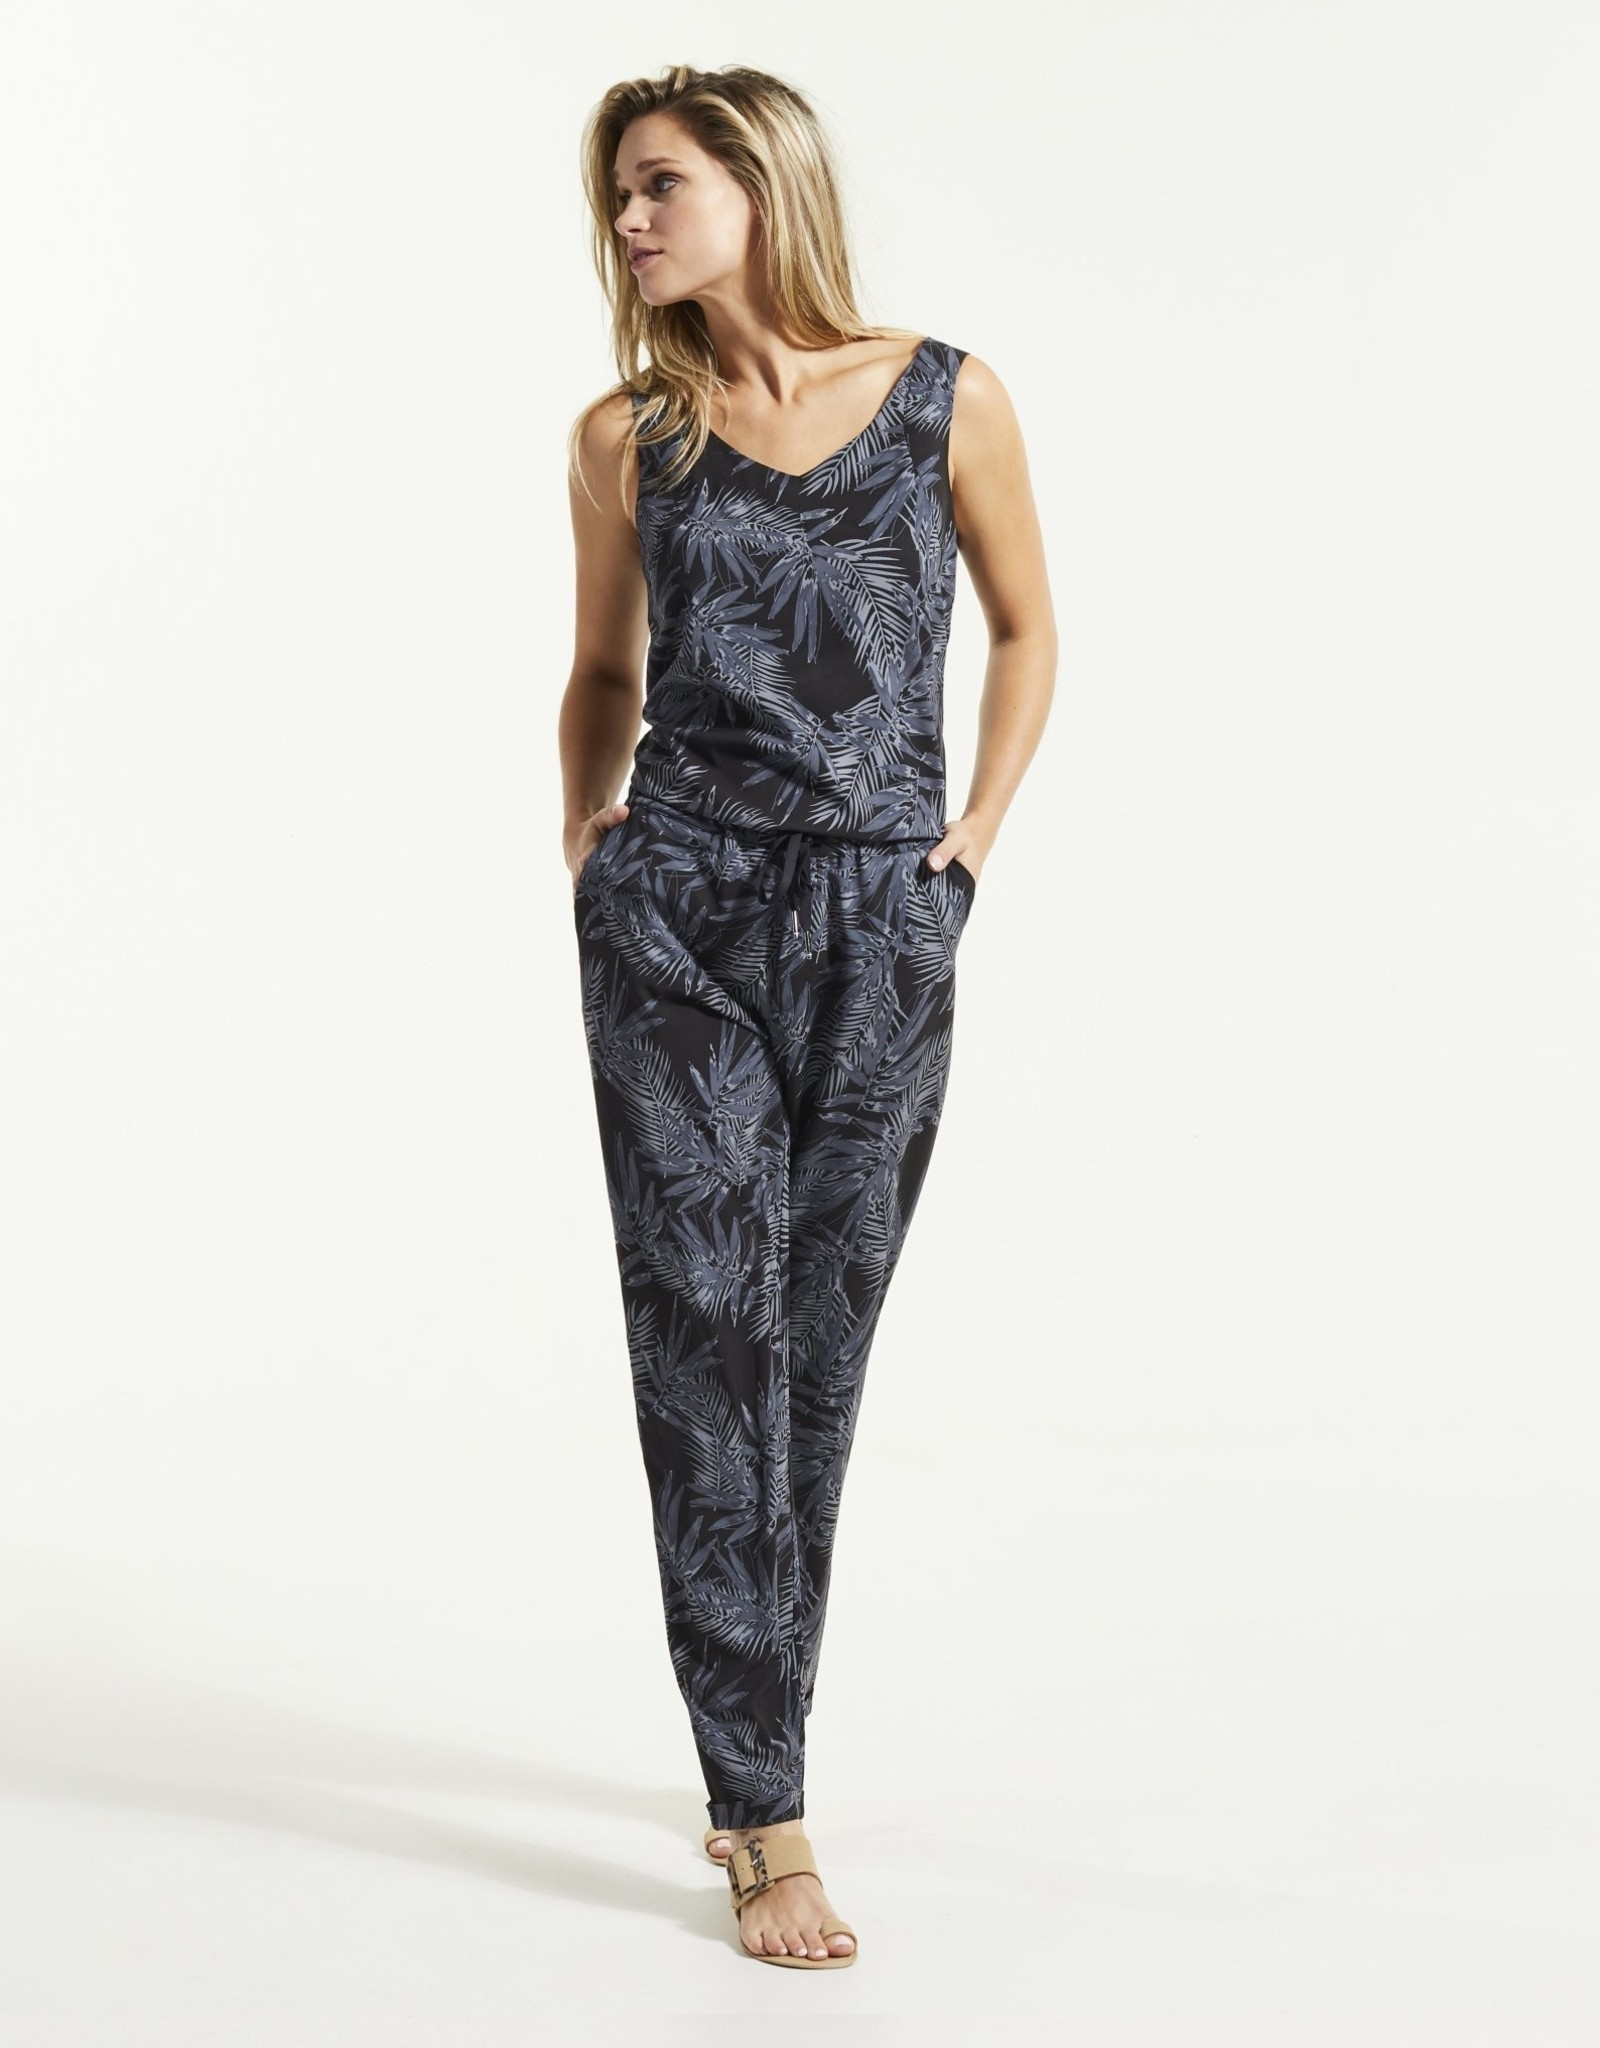 FIG ZAZ jumpsuit